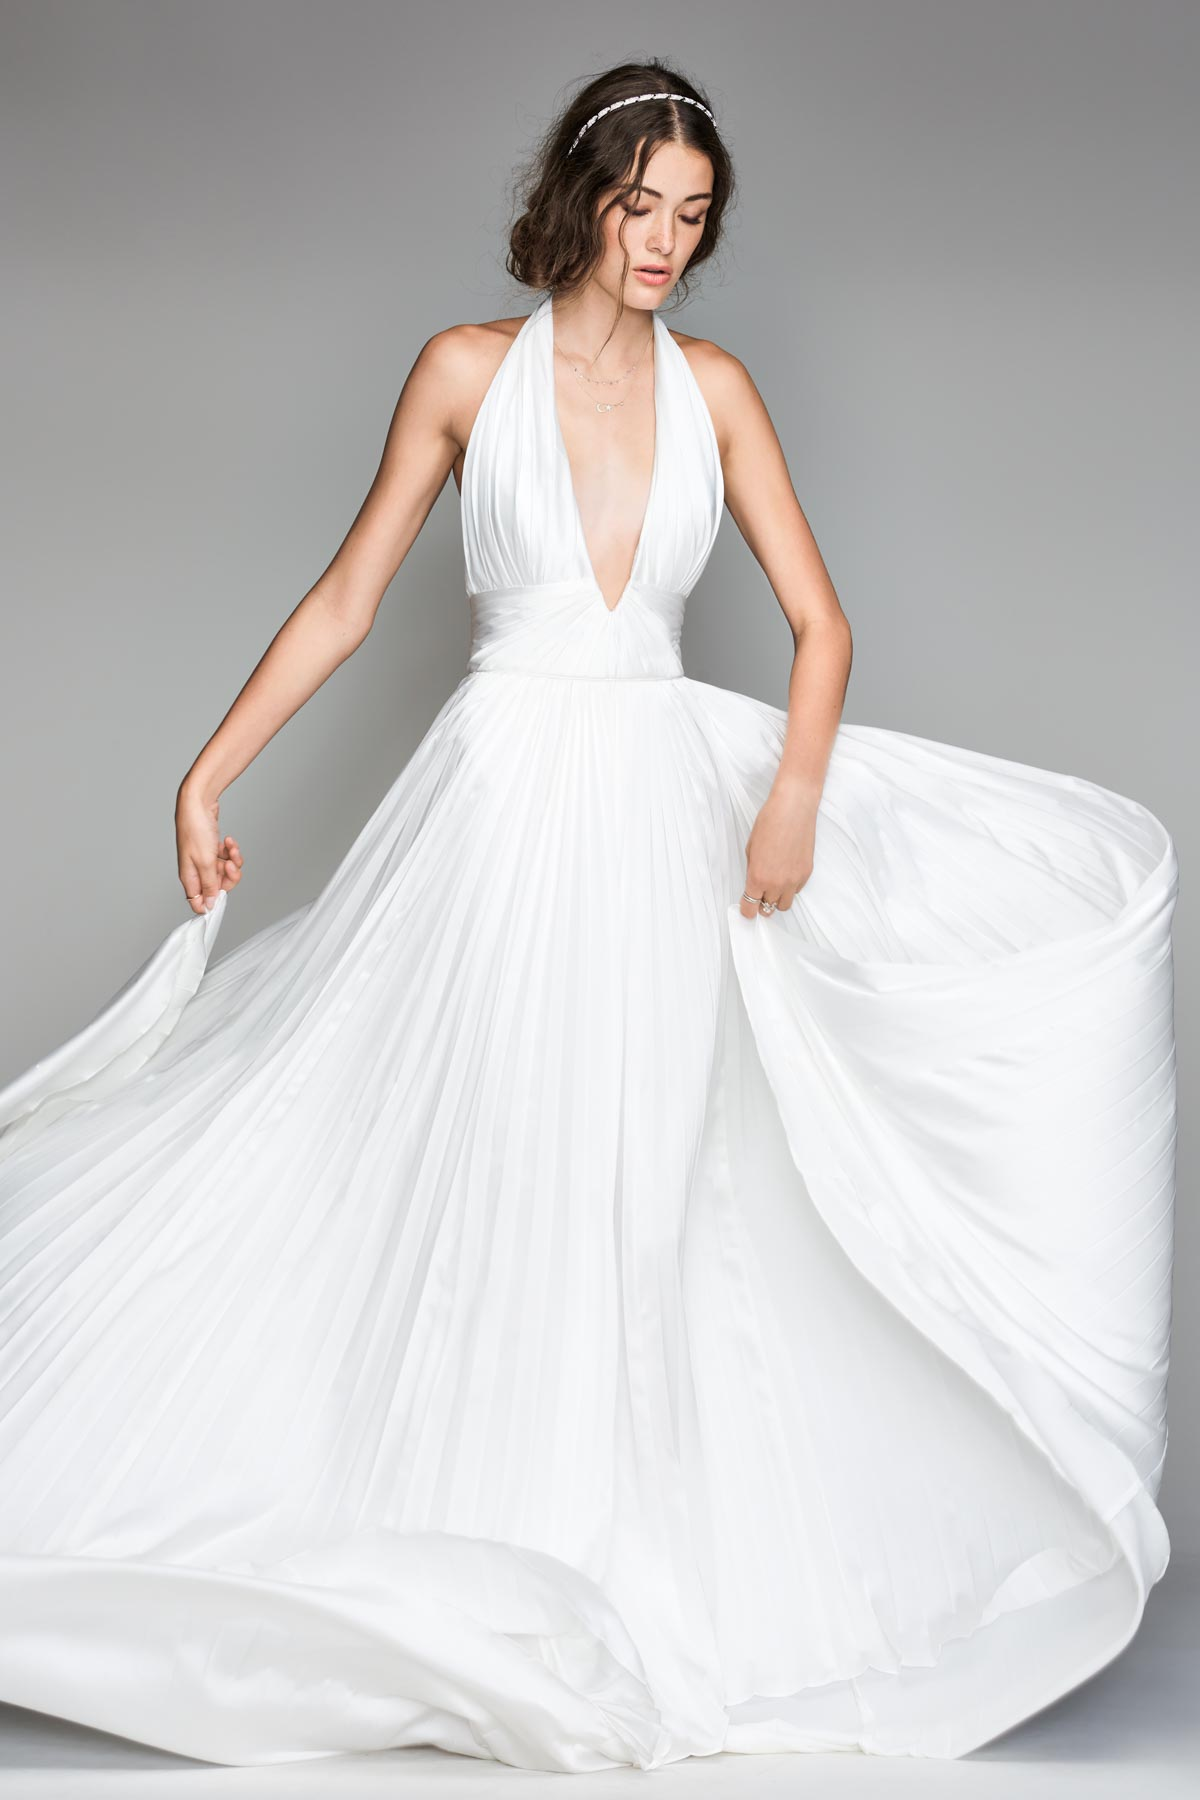 Halter Backless Bridal Dress | Bycouturier